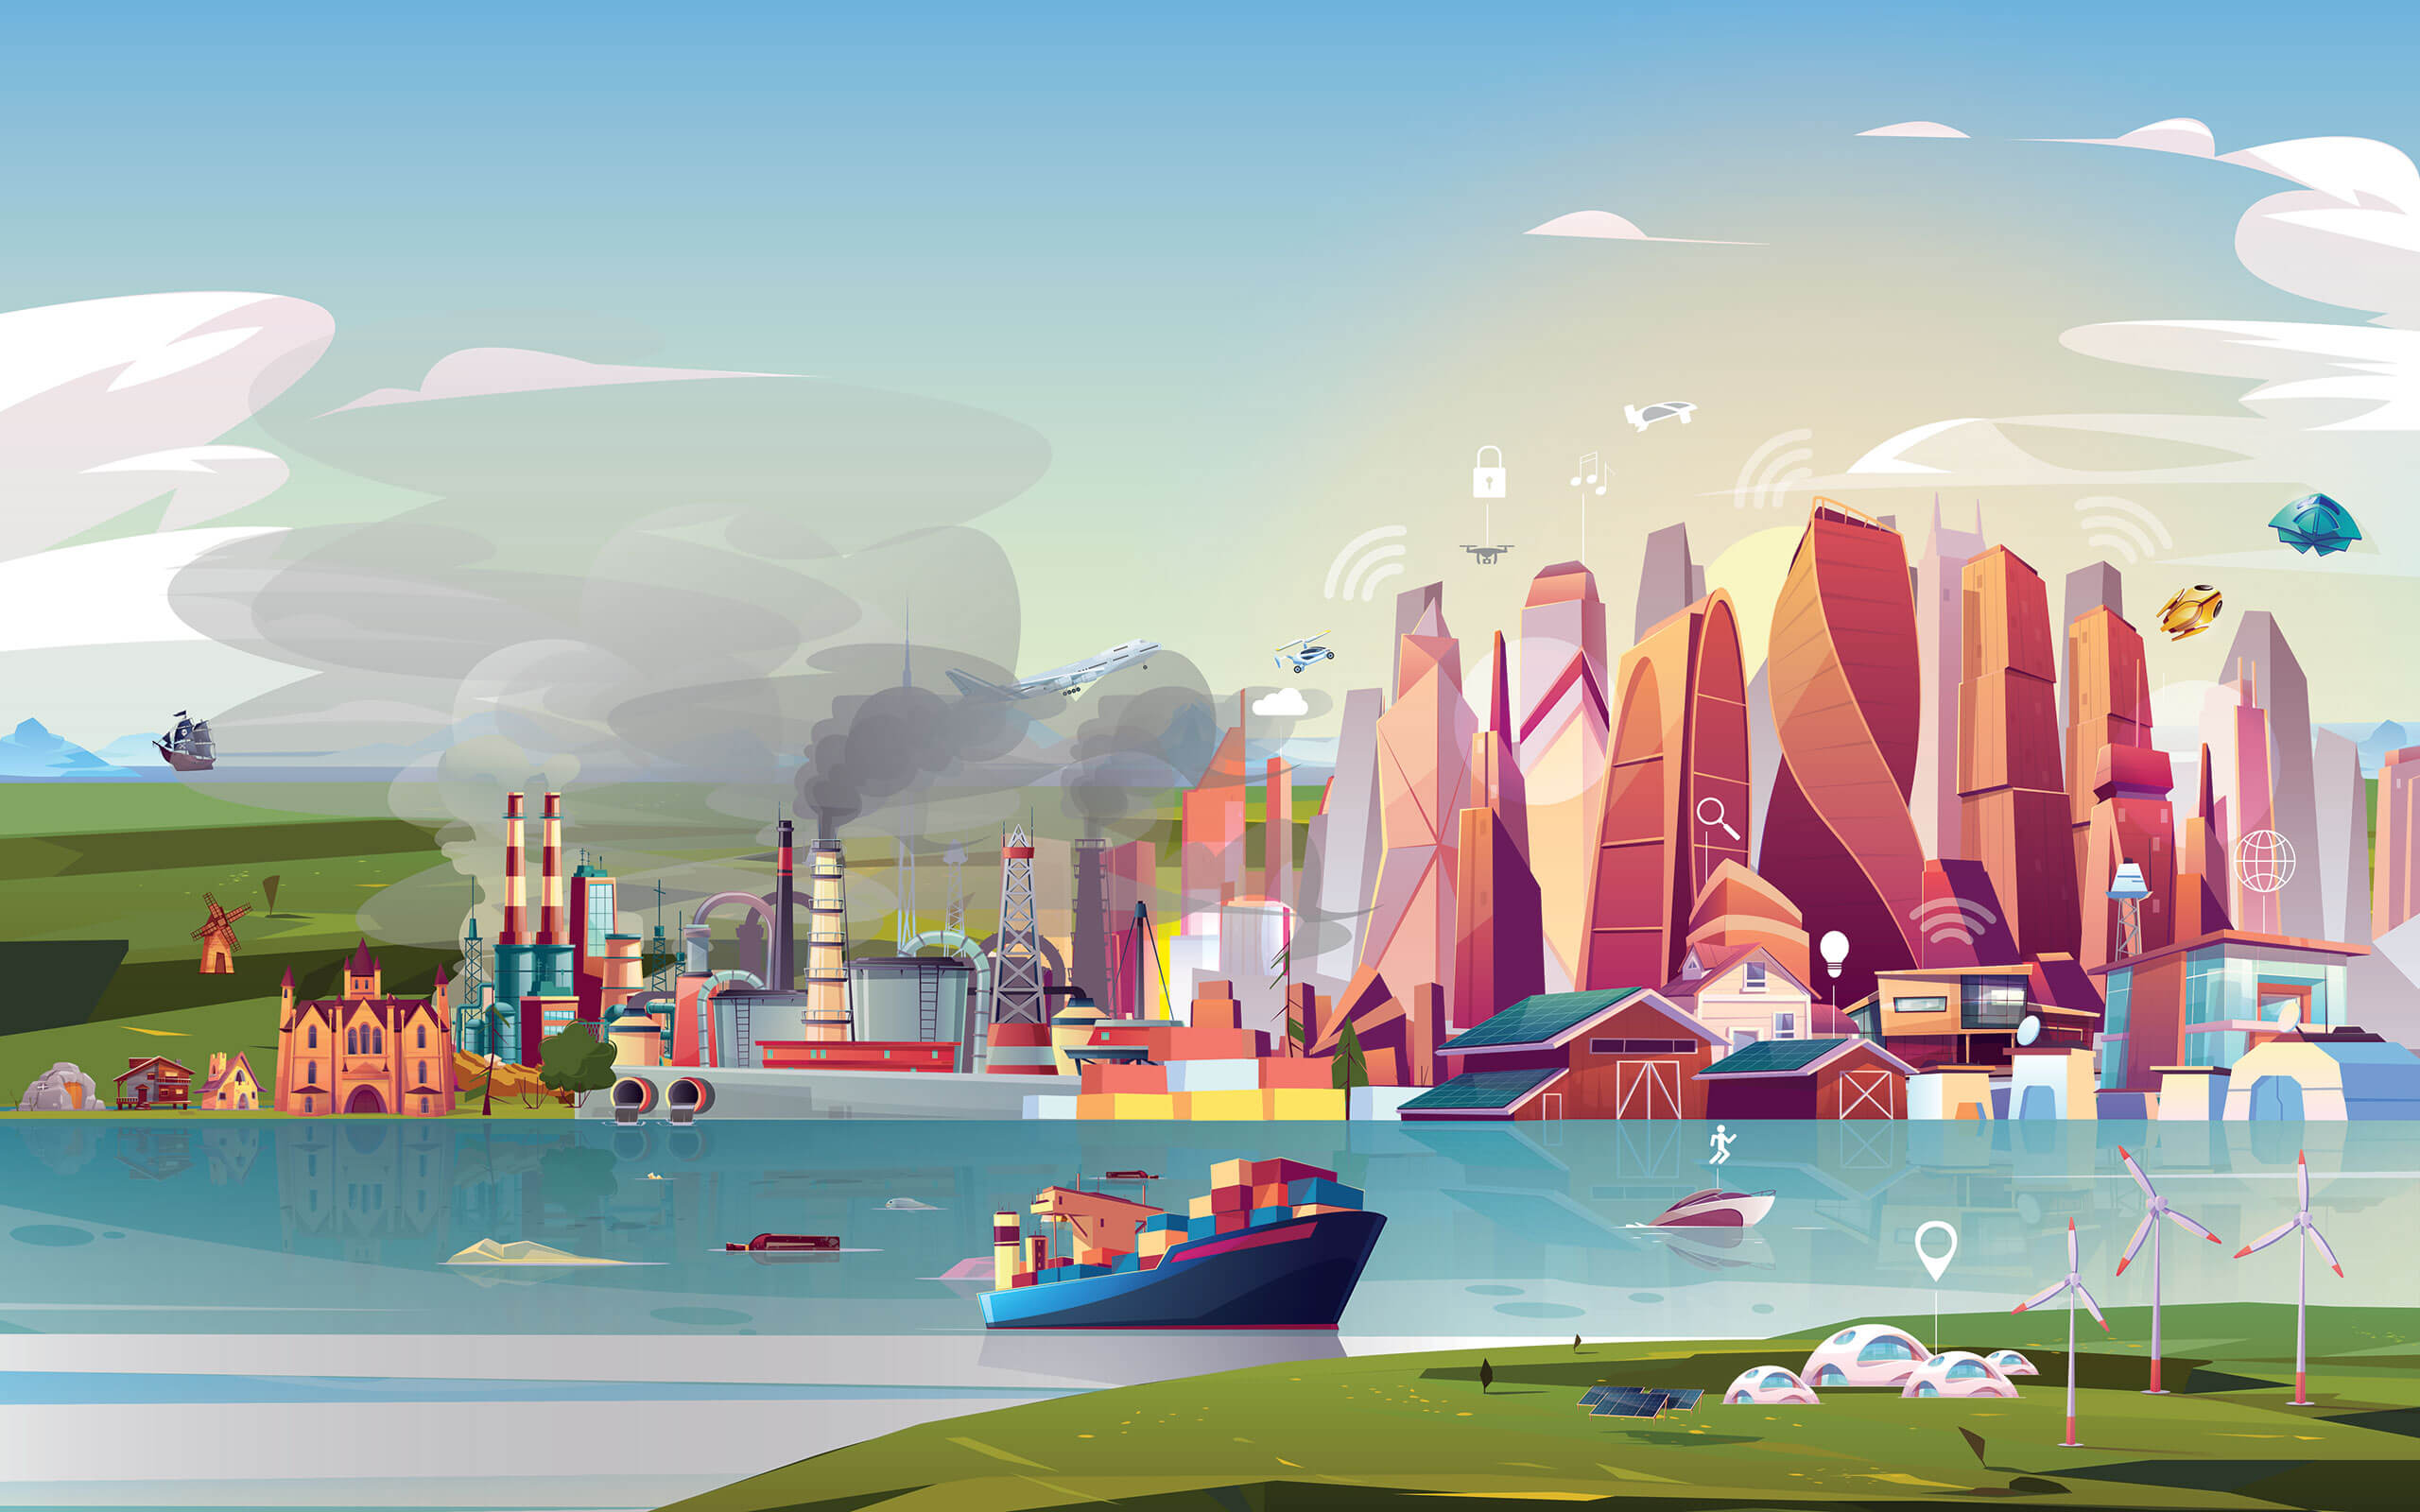 Animated image of colourful high rise buildings and industrial plant next to river, and renewable energy sources on field in foreground